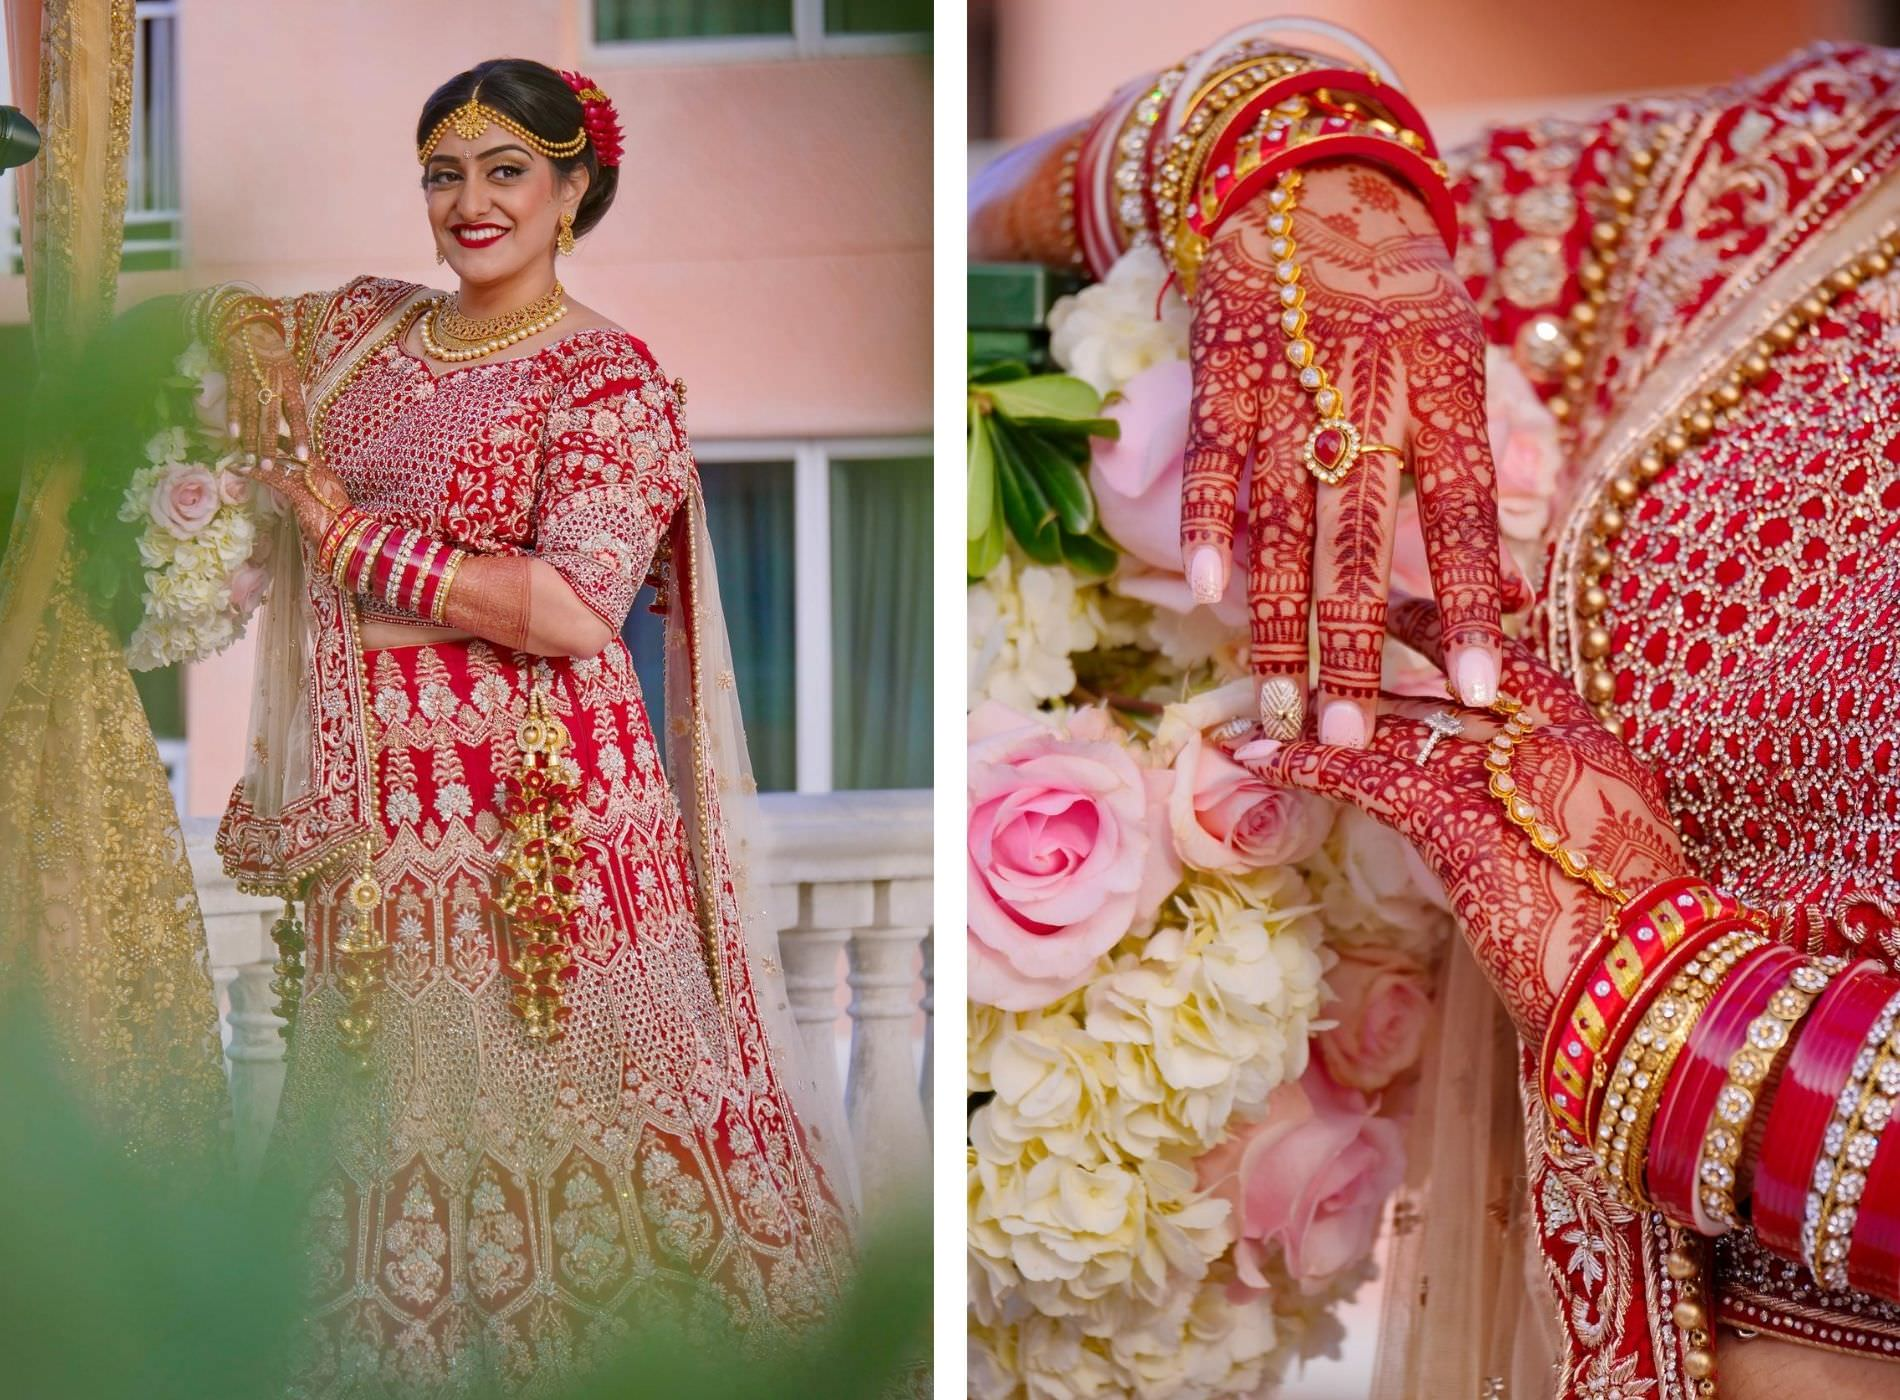 Red and Gold Traditional Indian Bridal Dress Lehenga Saree with Mehndi | Tampa Wedding Hair and Makeup Artist Michele Renee The Studio